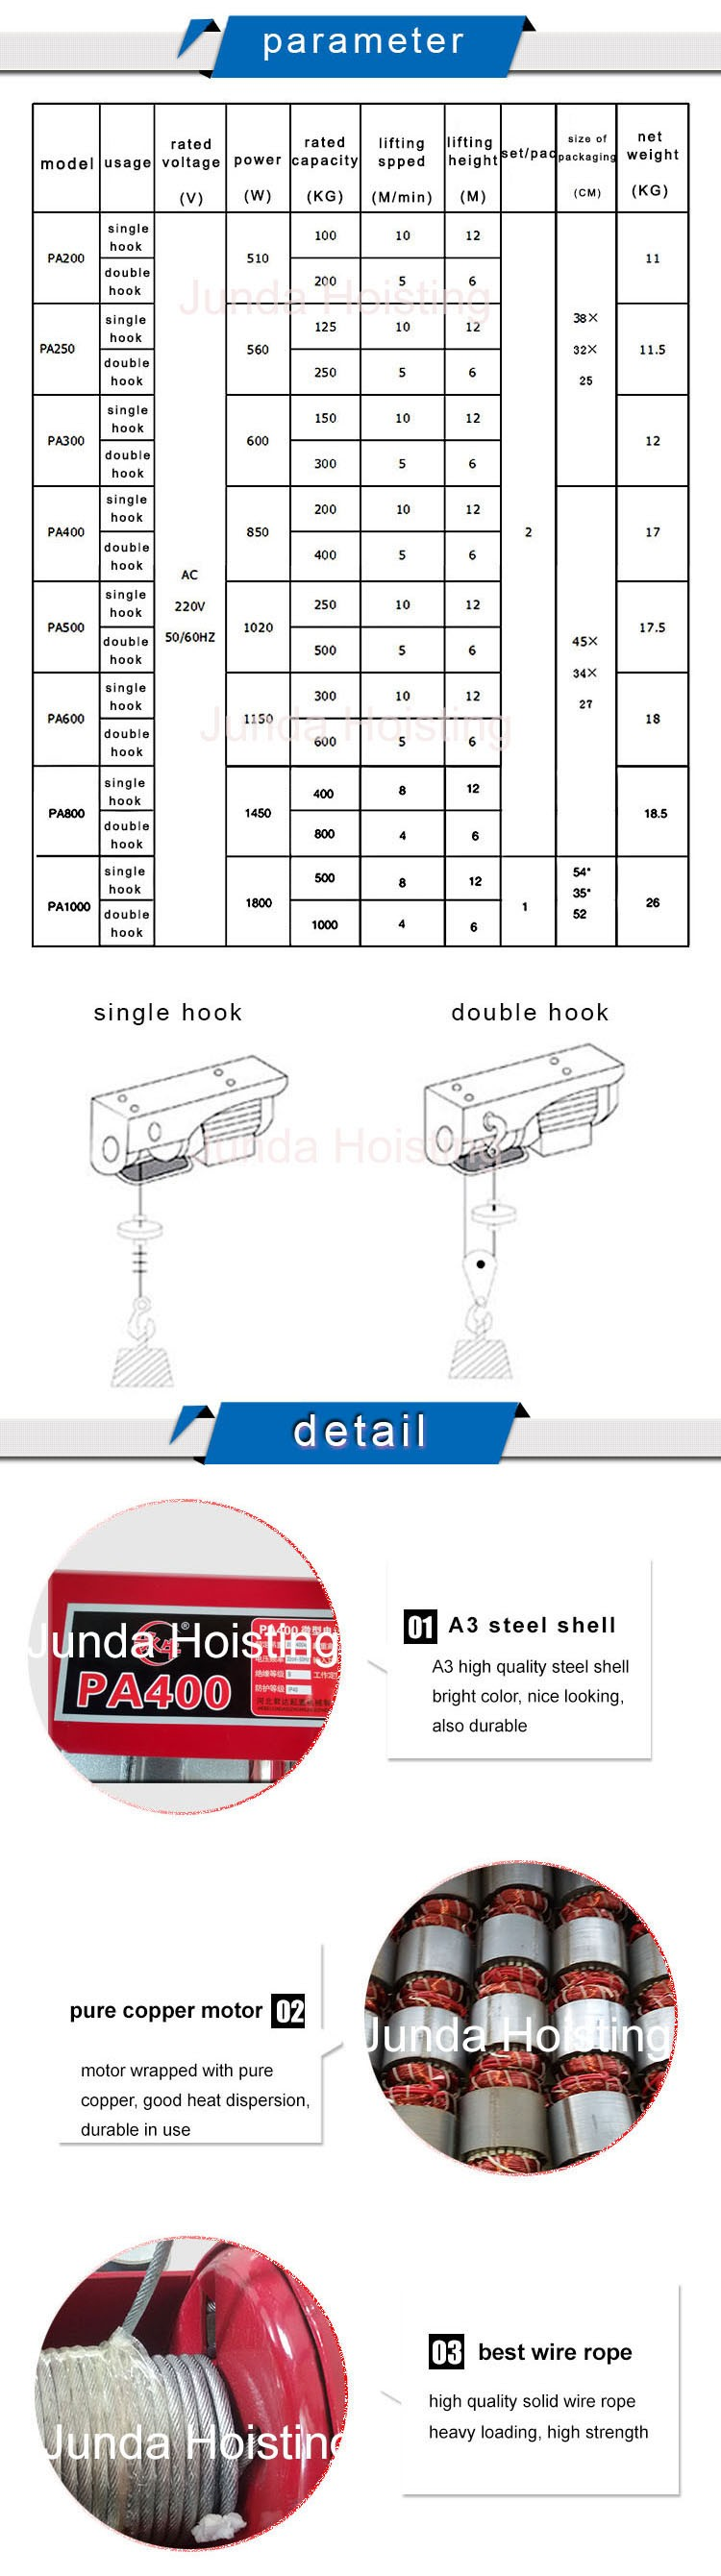 HTB1H6thMpXXXXboaXXXq6xXFXXXg mini small pa electric motor wire rope lift hoist pa200 pa300  at soozxer.org